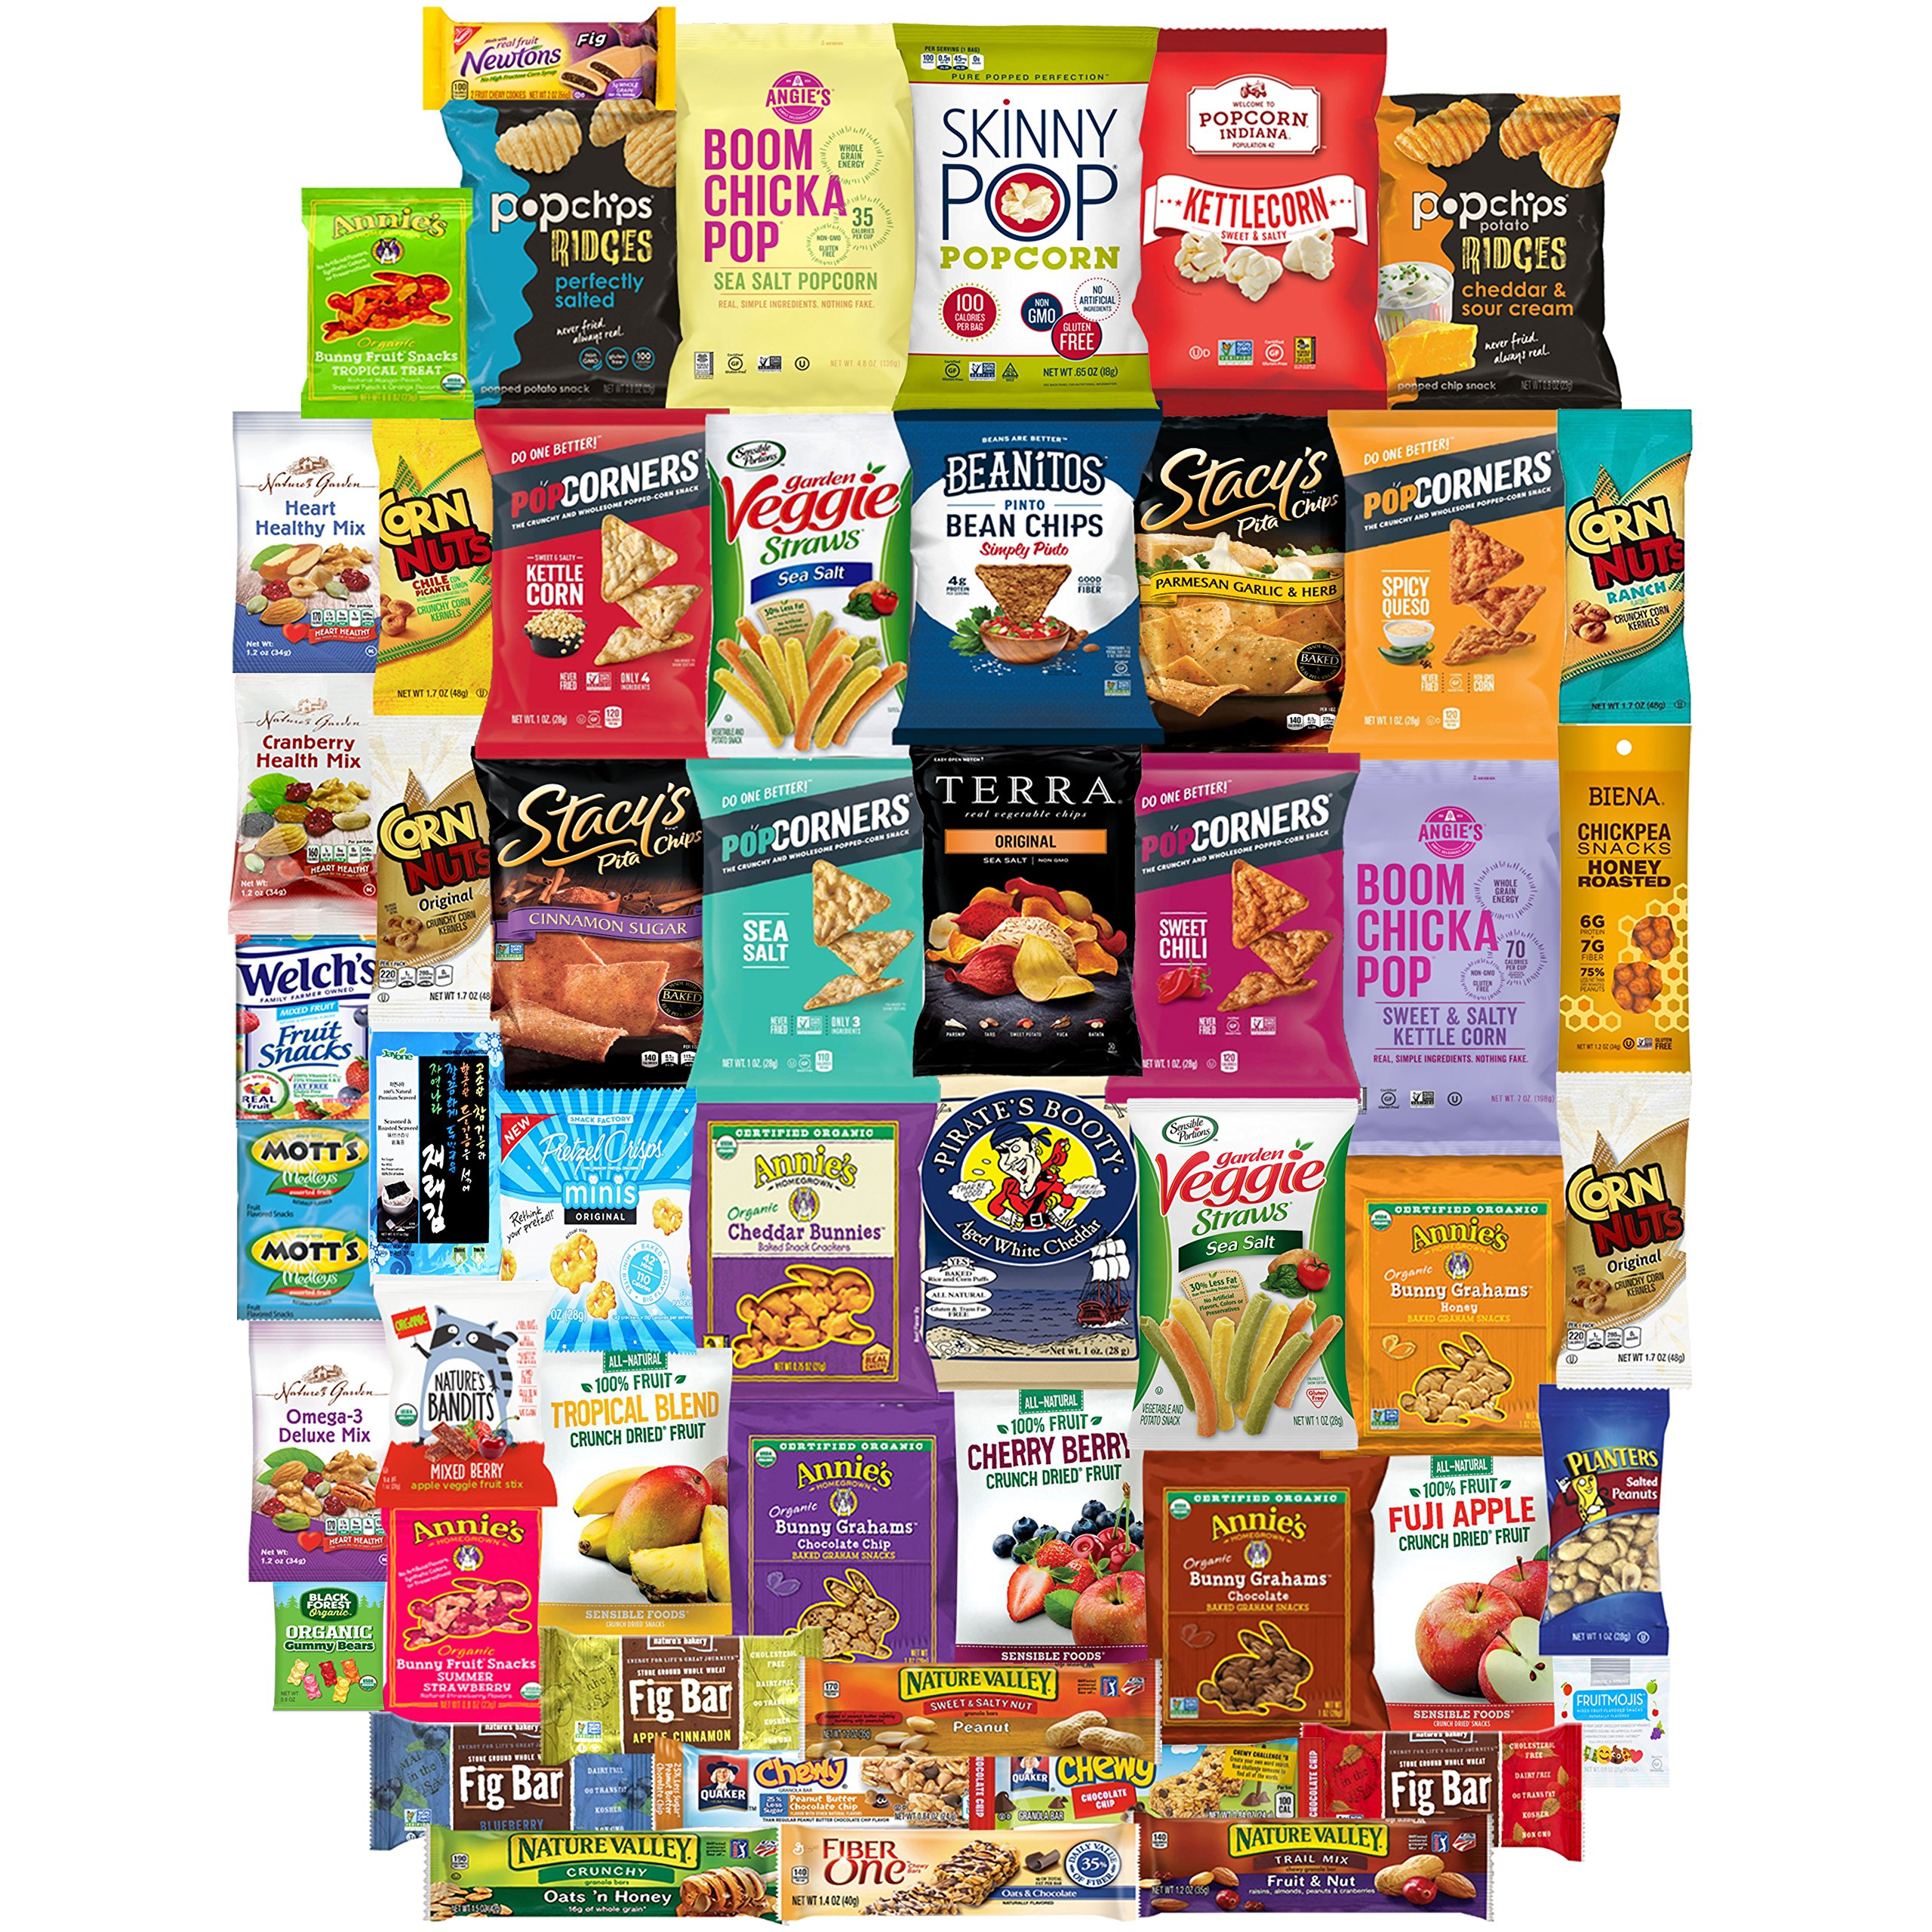 Healthy Snacks Care Package, Many Different Treats To Sample, Chips, Popcorn, Nuts and Gummy Items (50 Count) by Snacks Generation (Image #1)